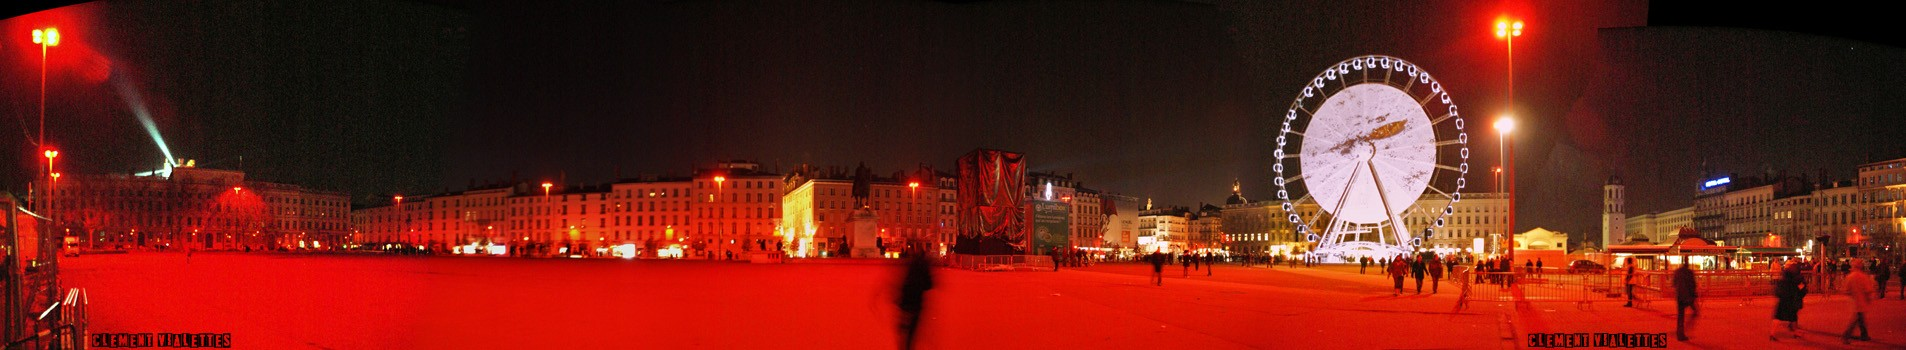 france-lyon-8_decembre-place_bellecour.jpg